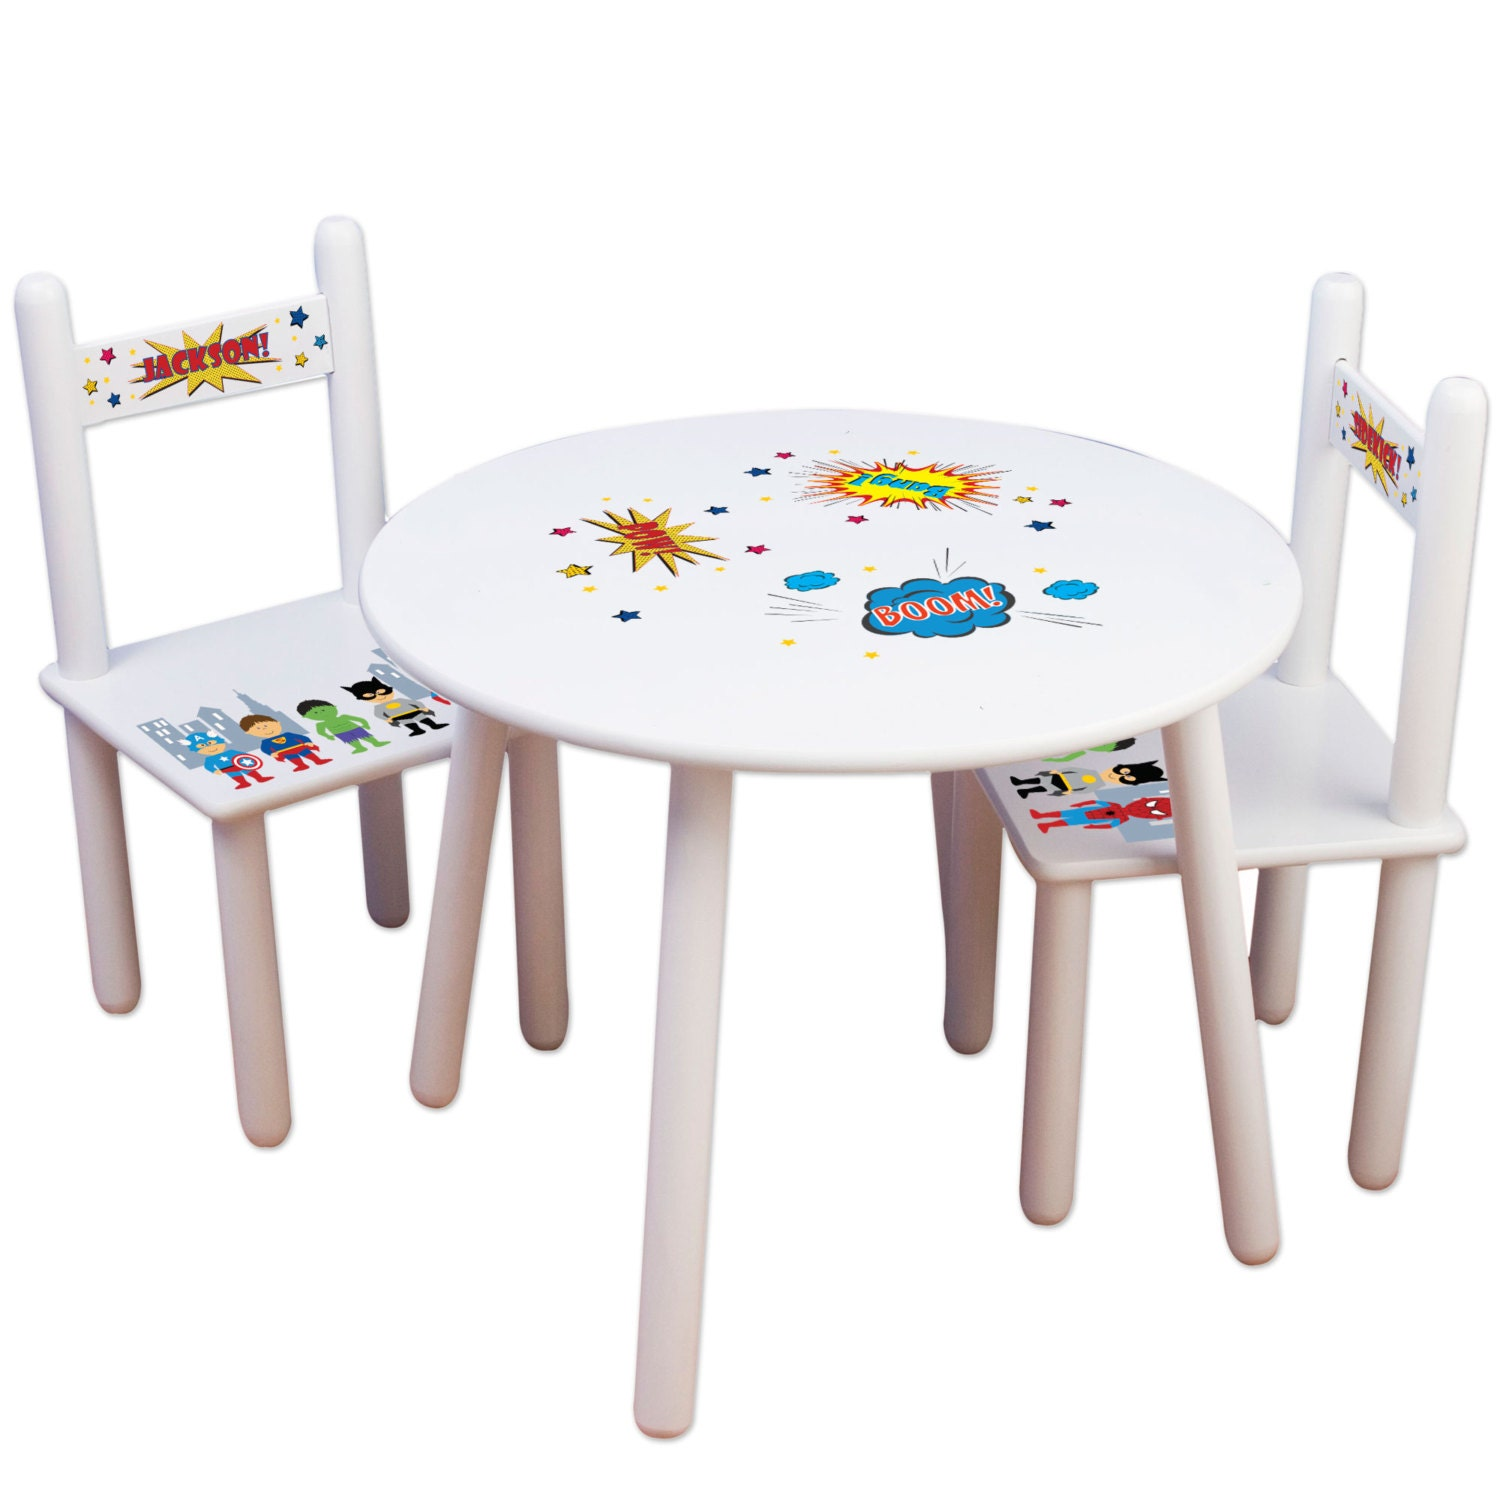 Childrens Table And Chair Sets. Toddler Desk Table Chairs Set Kids